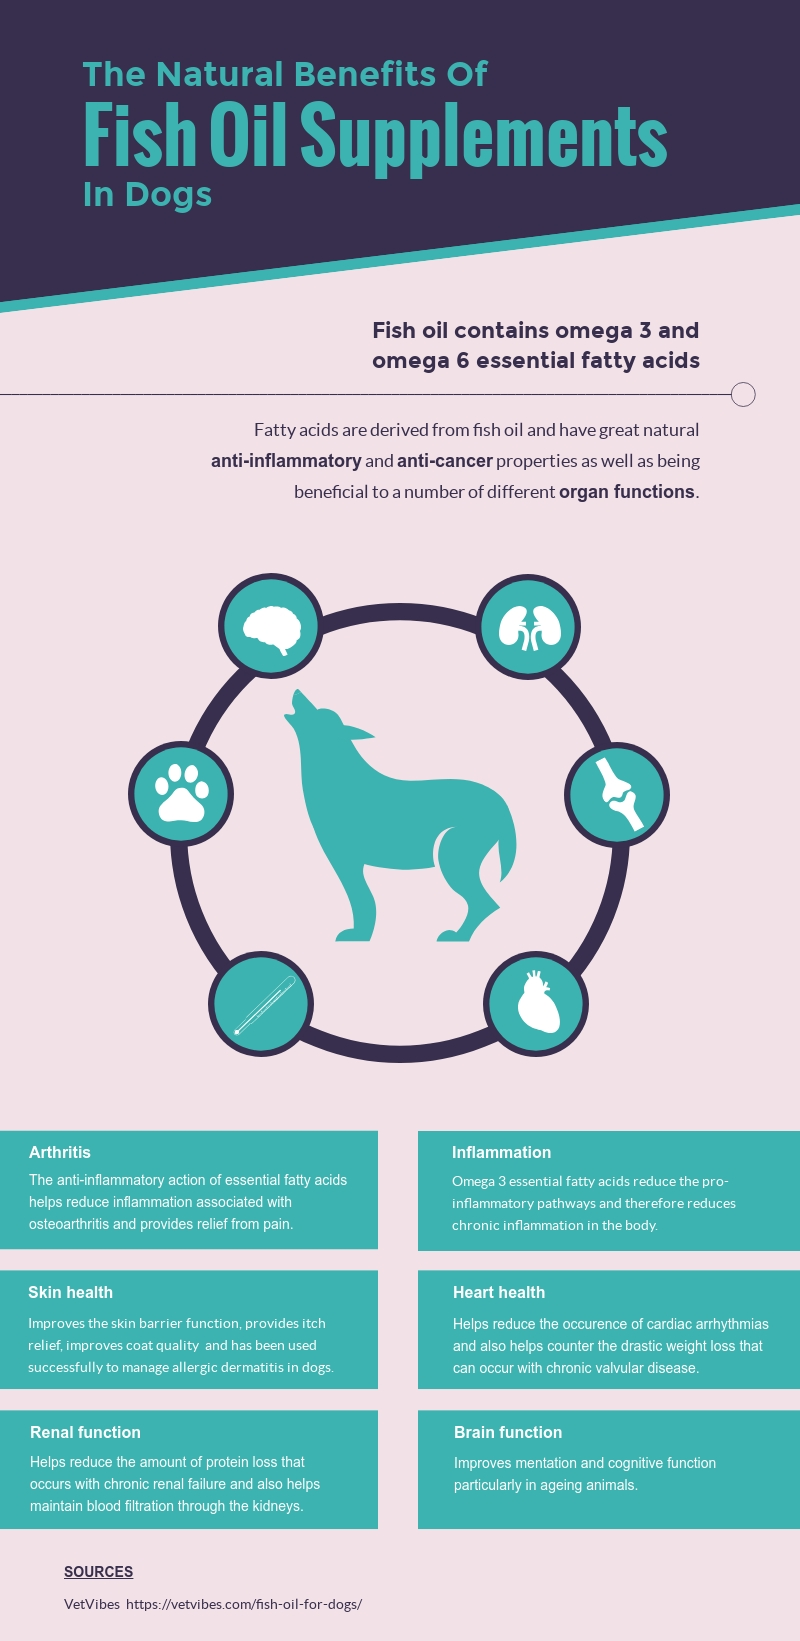 FitBark_Fish_Oil_infographic | The Natural Benefits of Fish Oil Supplements In Dogs